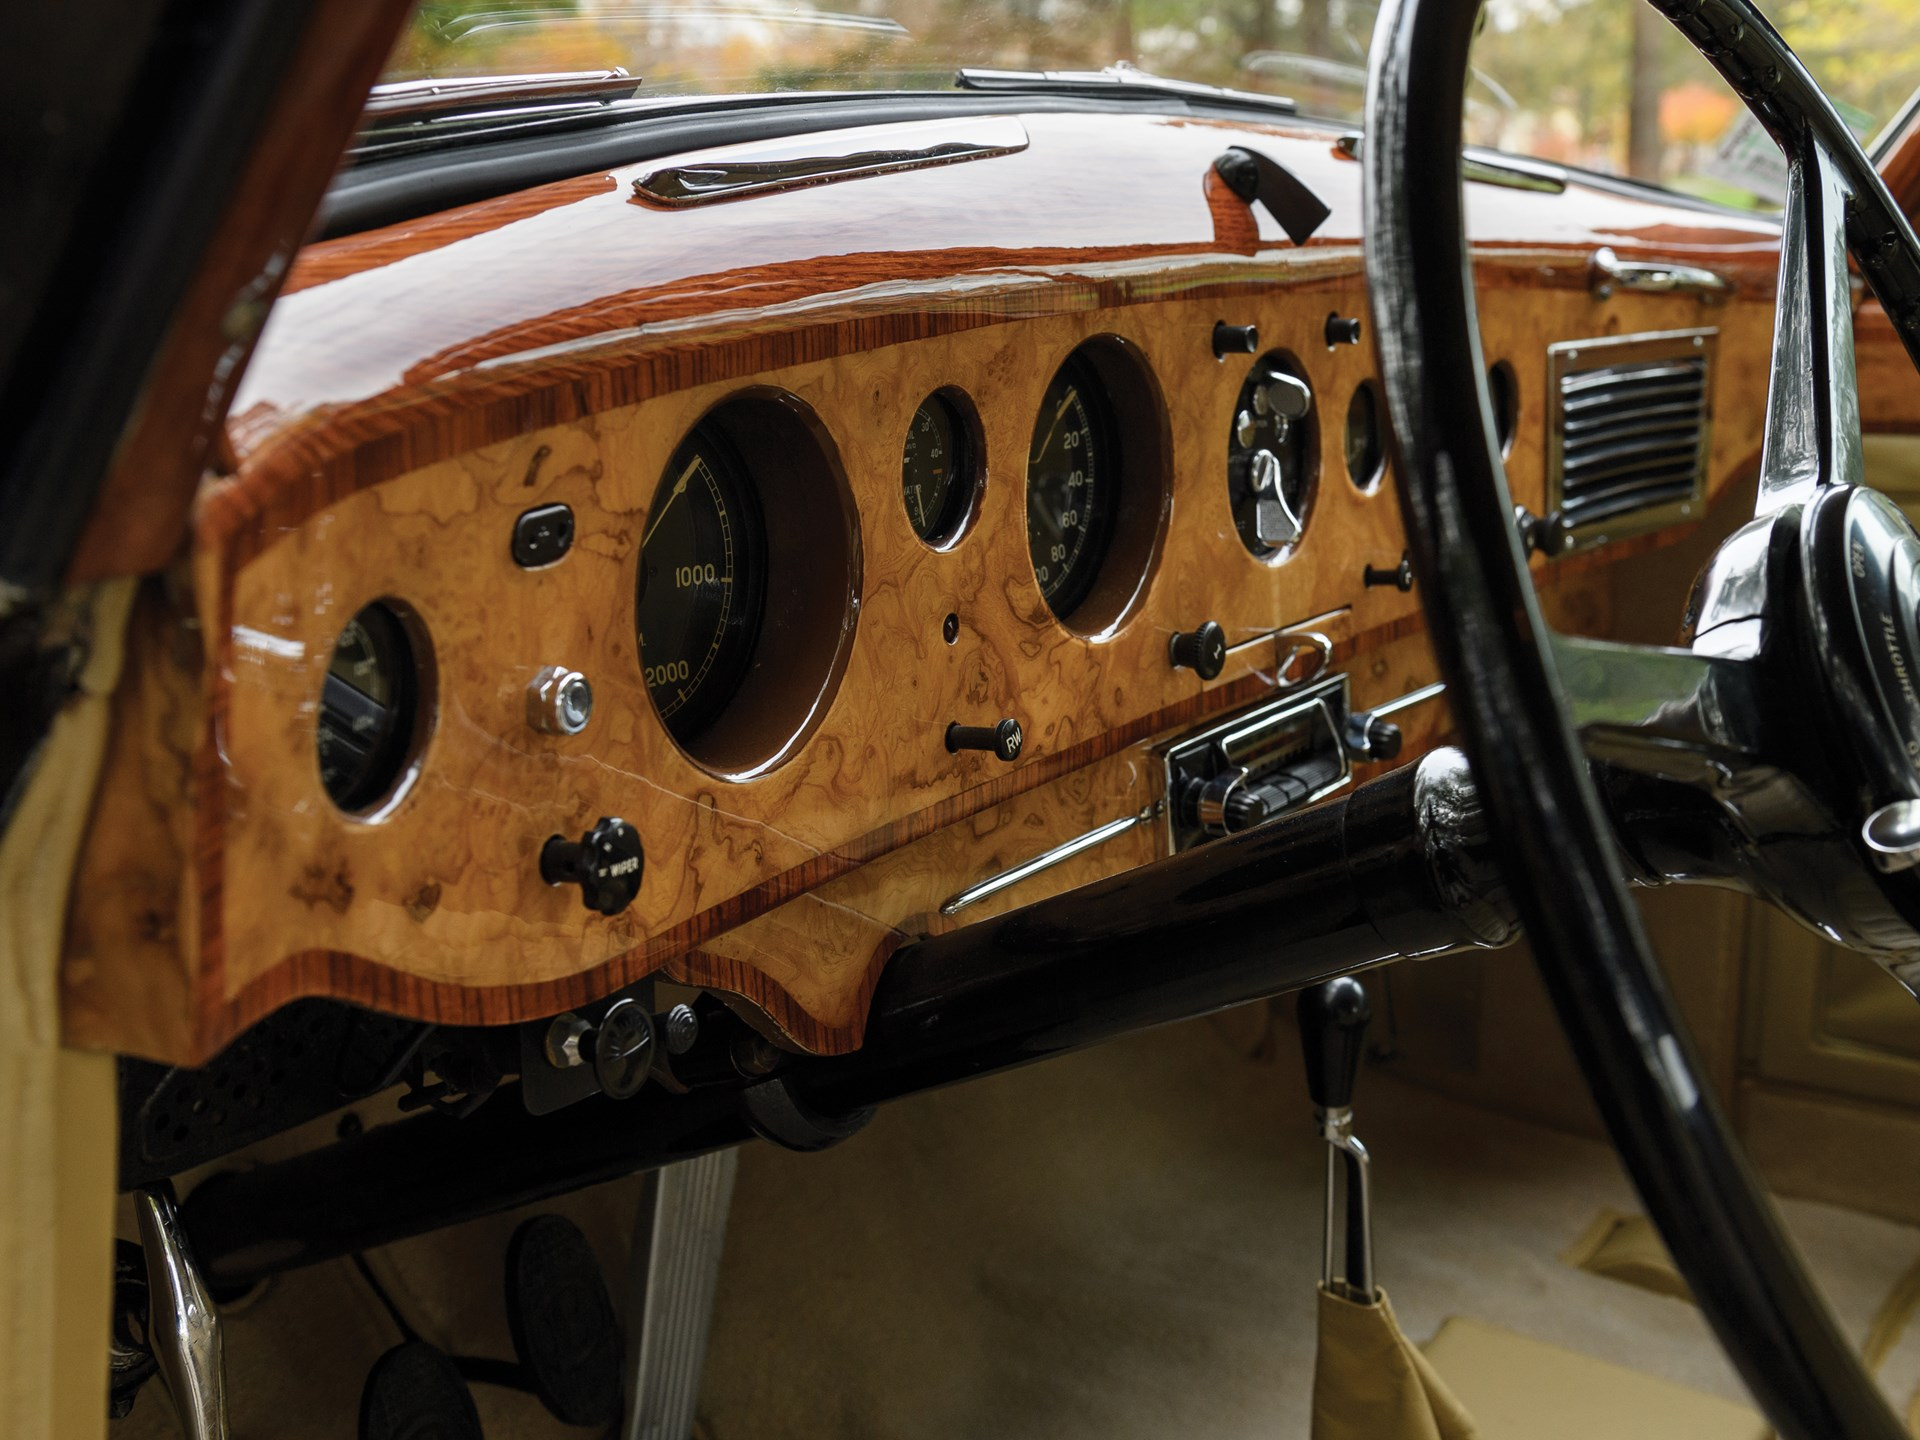 1954 Bentley R-Type Continental Fastback Sports Saloon by Franay